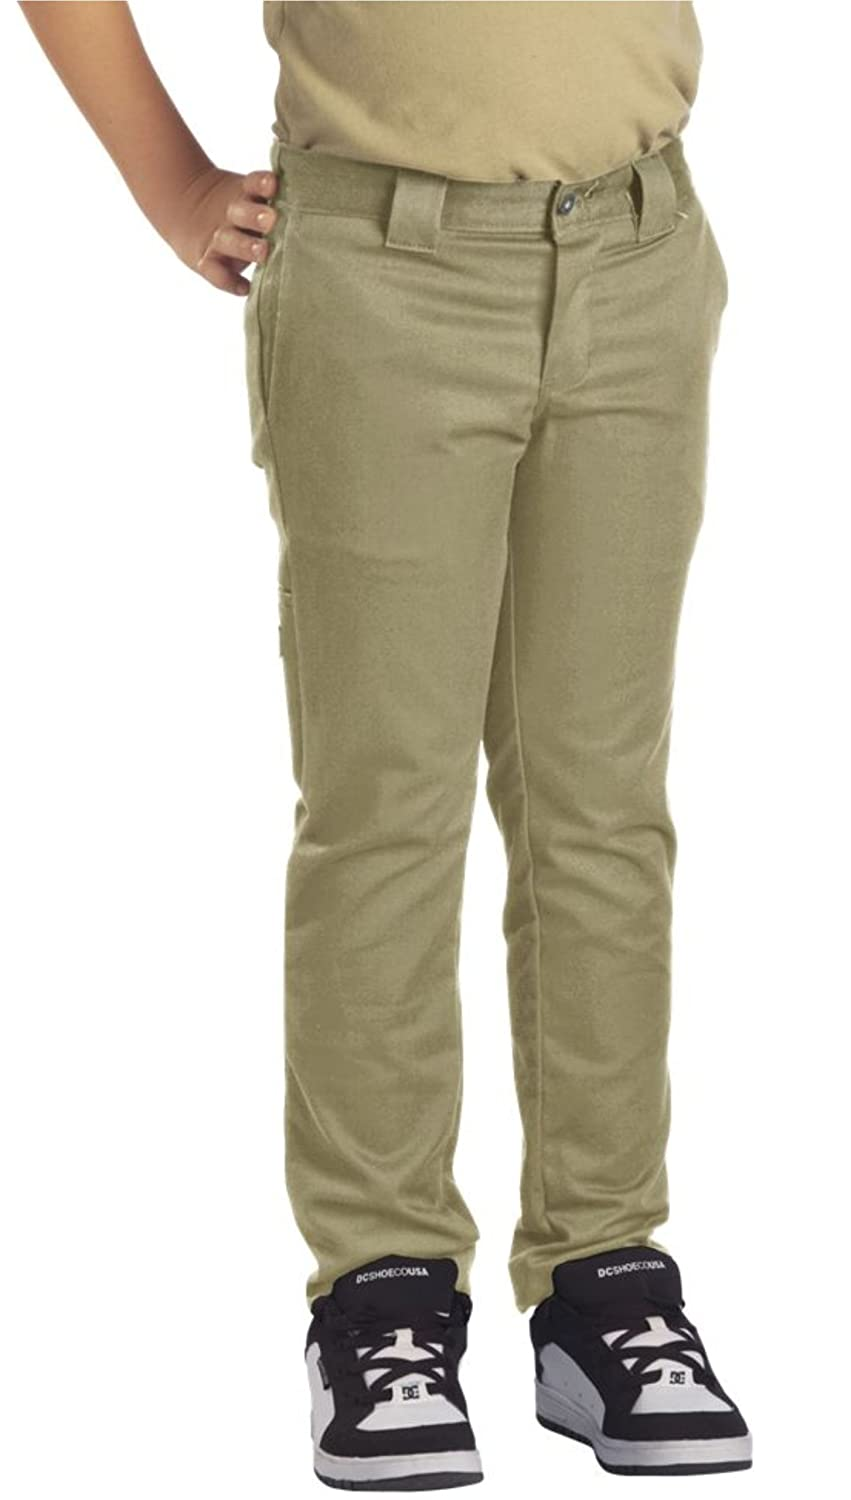 39d095a2e2a72 Dickies Boys' Skinny Straight Pant